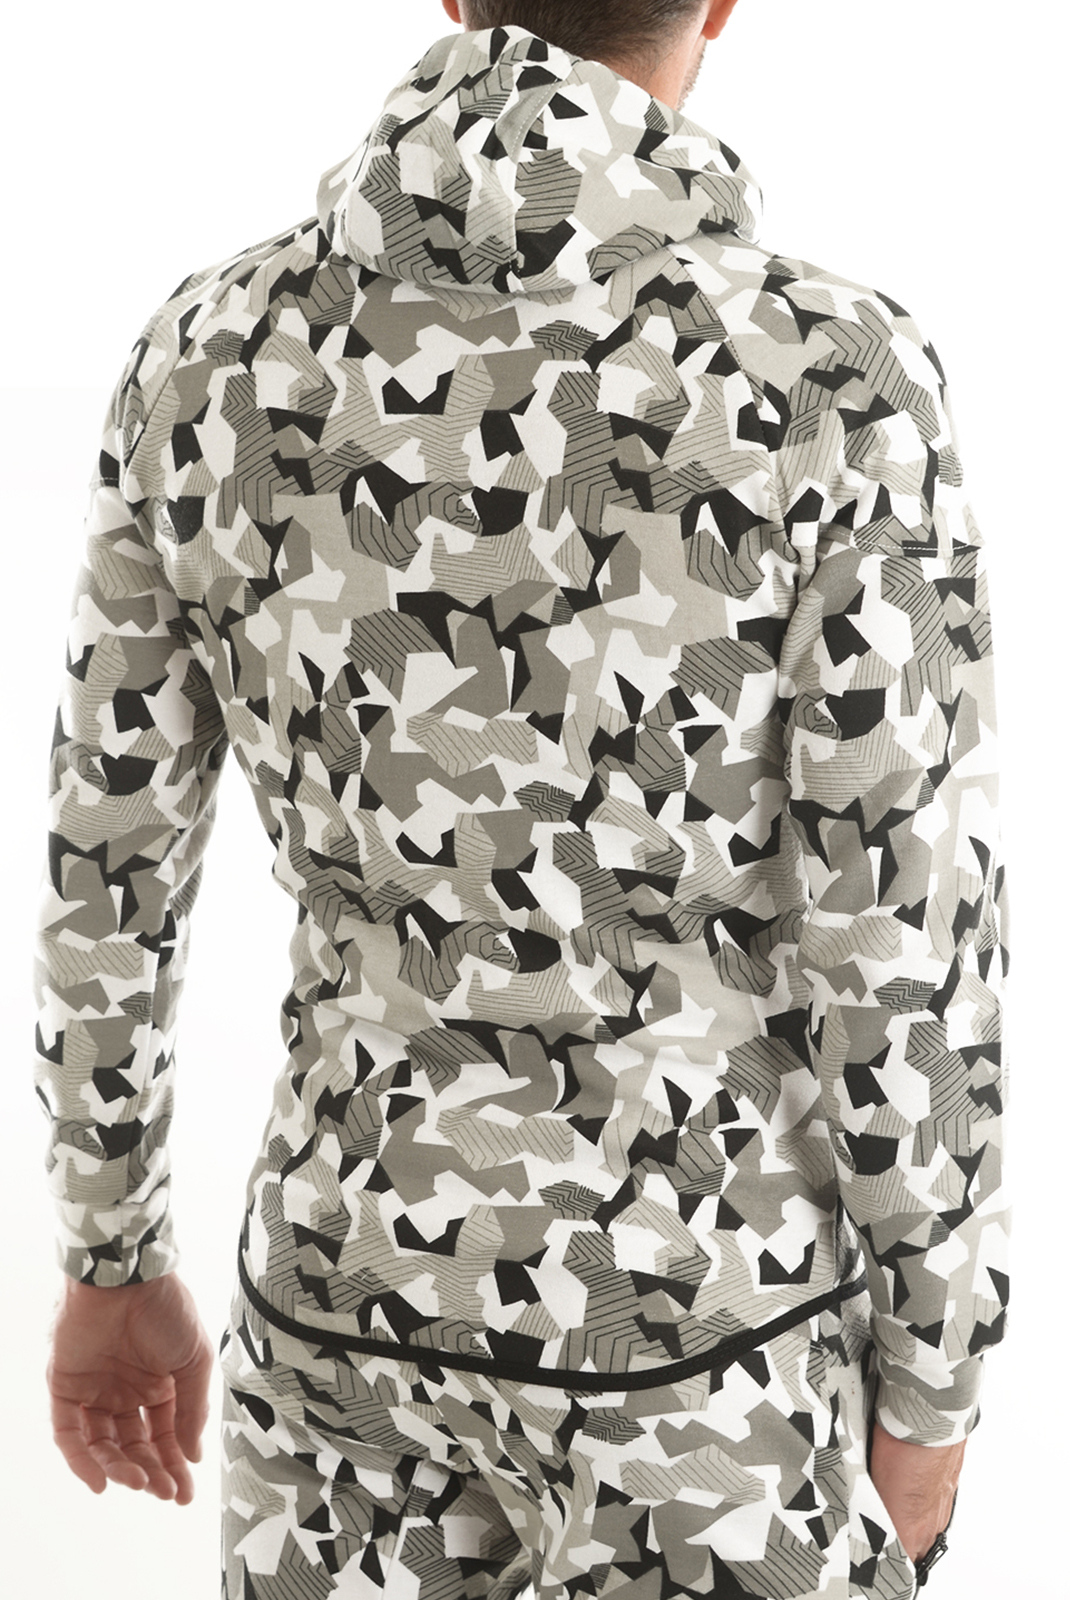 Survêtements  Apologize NAIVO CAMO GEO WHITE